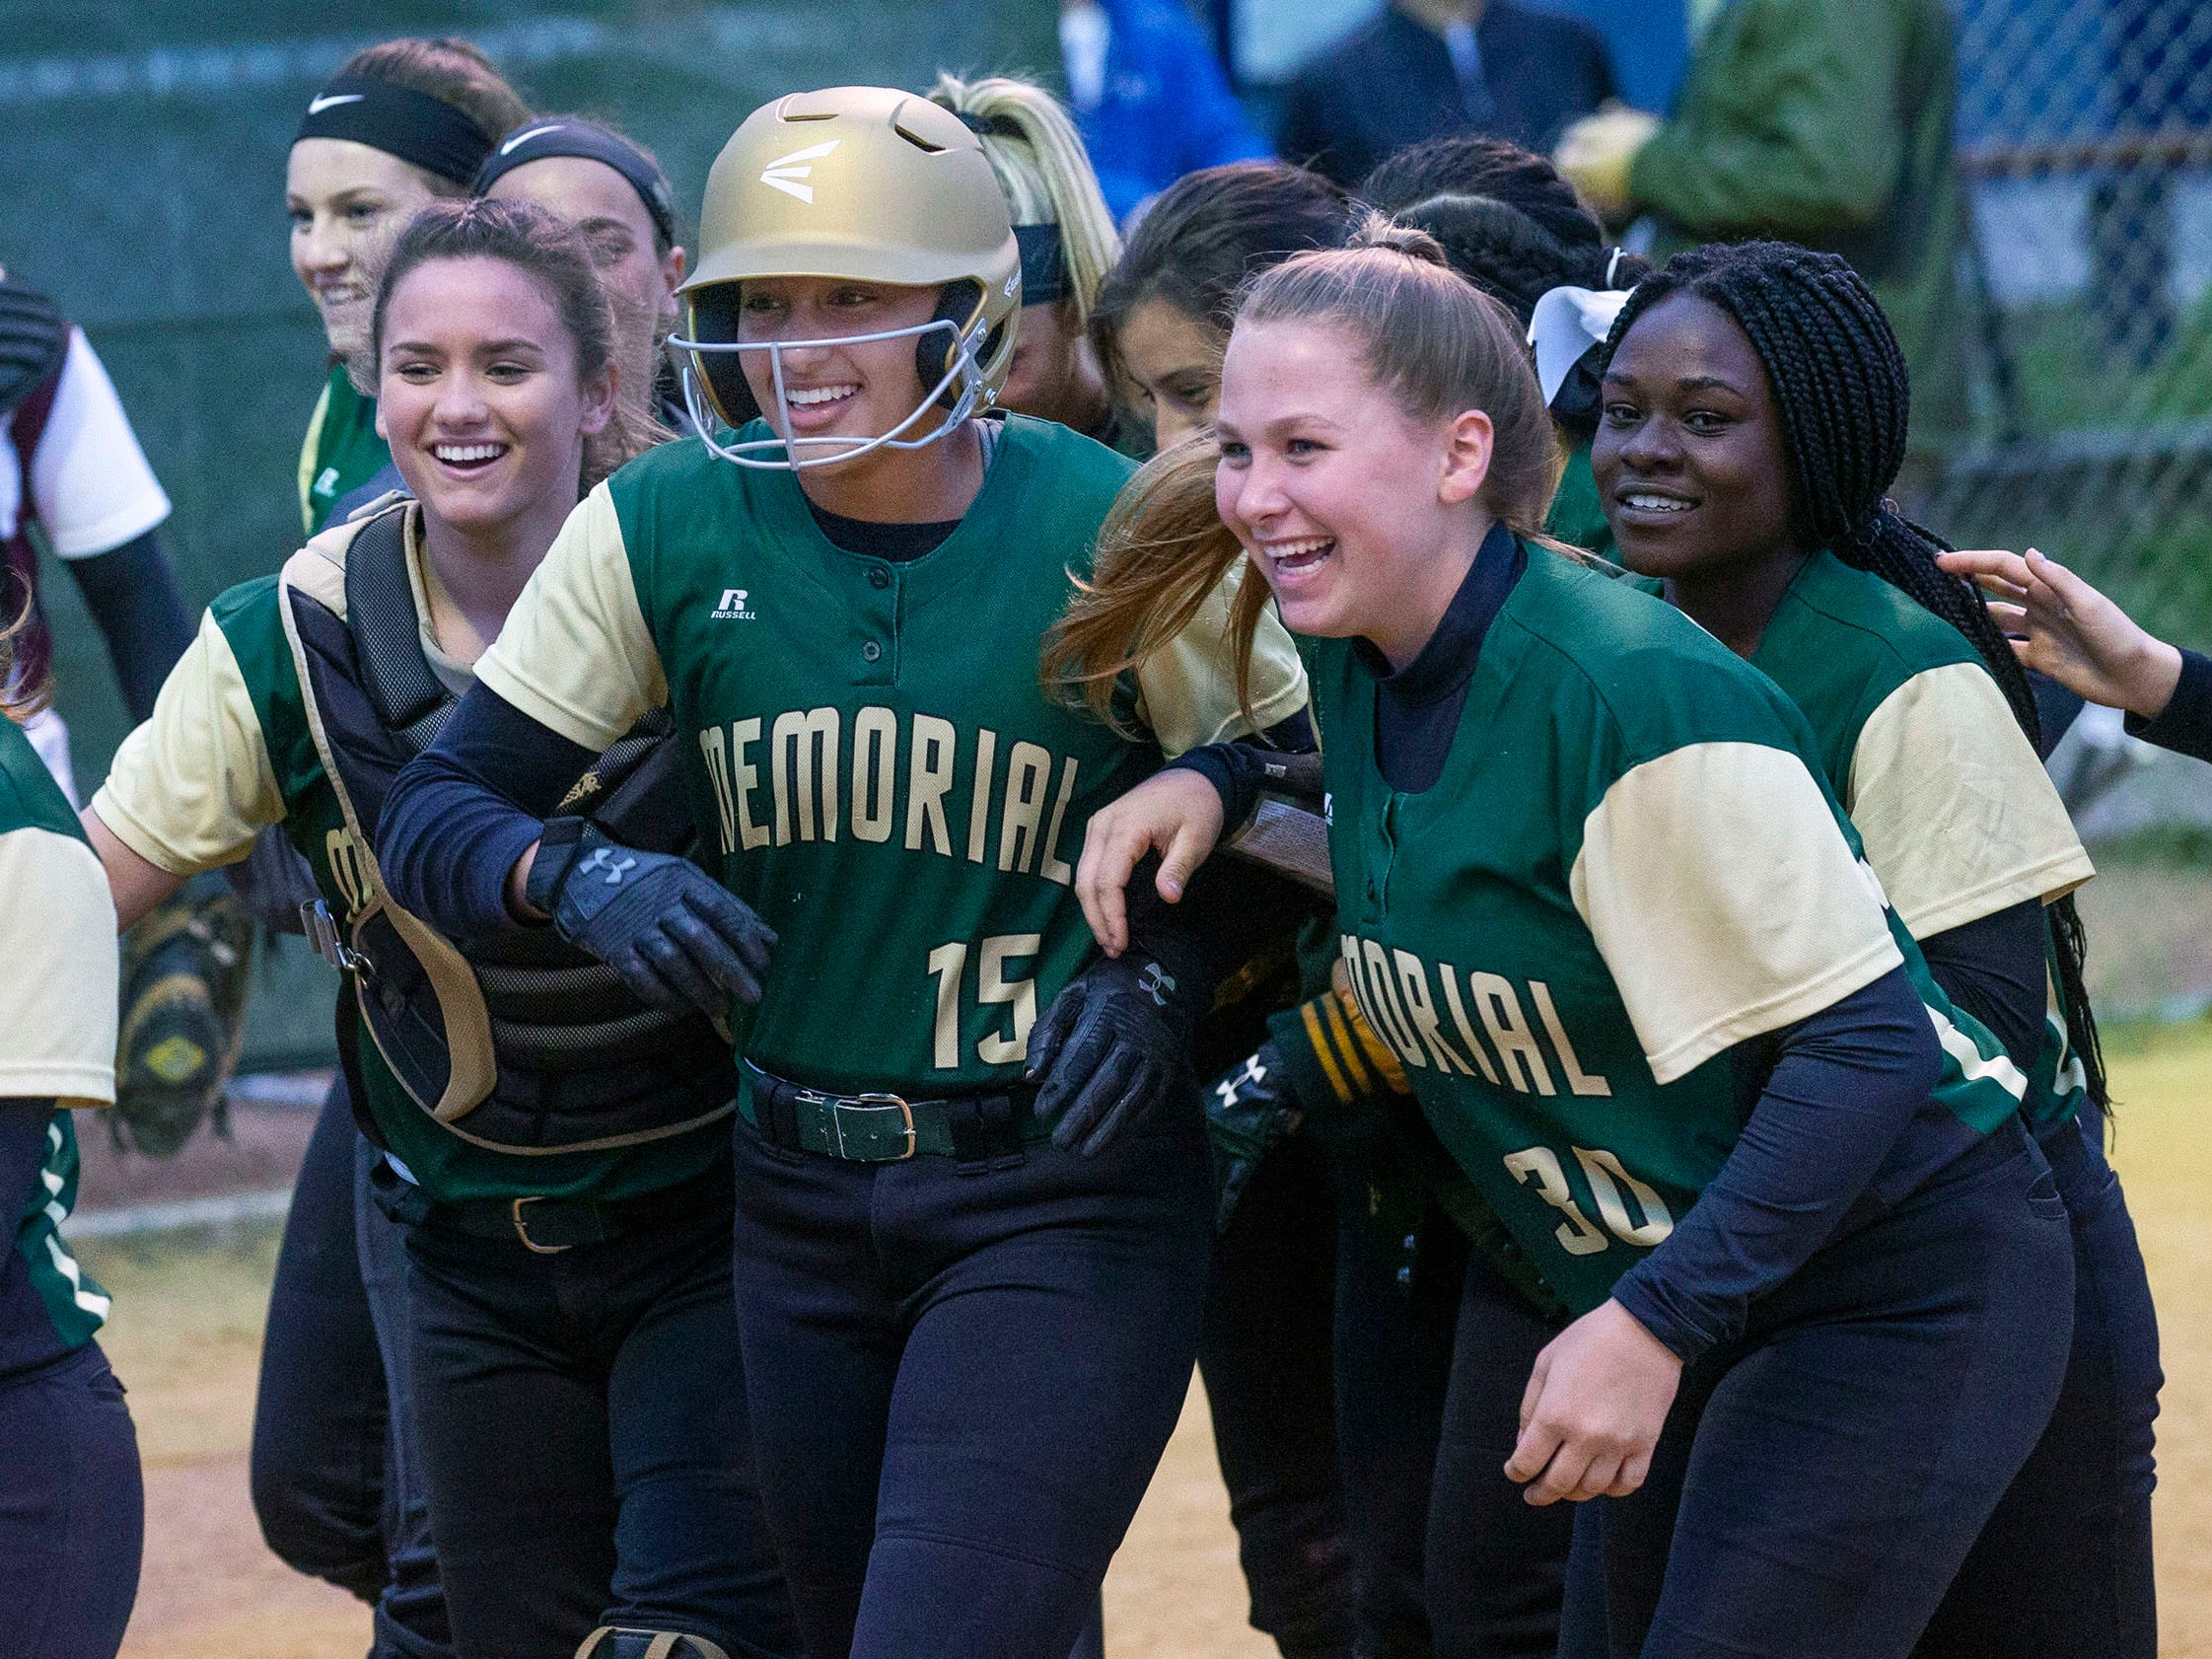 Brick's Kiara Richards is mobbed by team mates after she hit her first of two home runs. Brick Memorial softball defeats Toms River South 9-1 in Ocean County Championship game in Toms River on May 4, 2019.